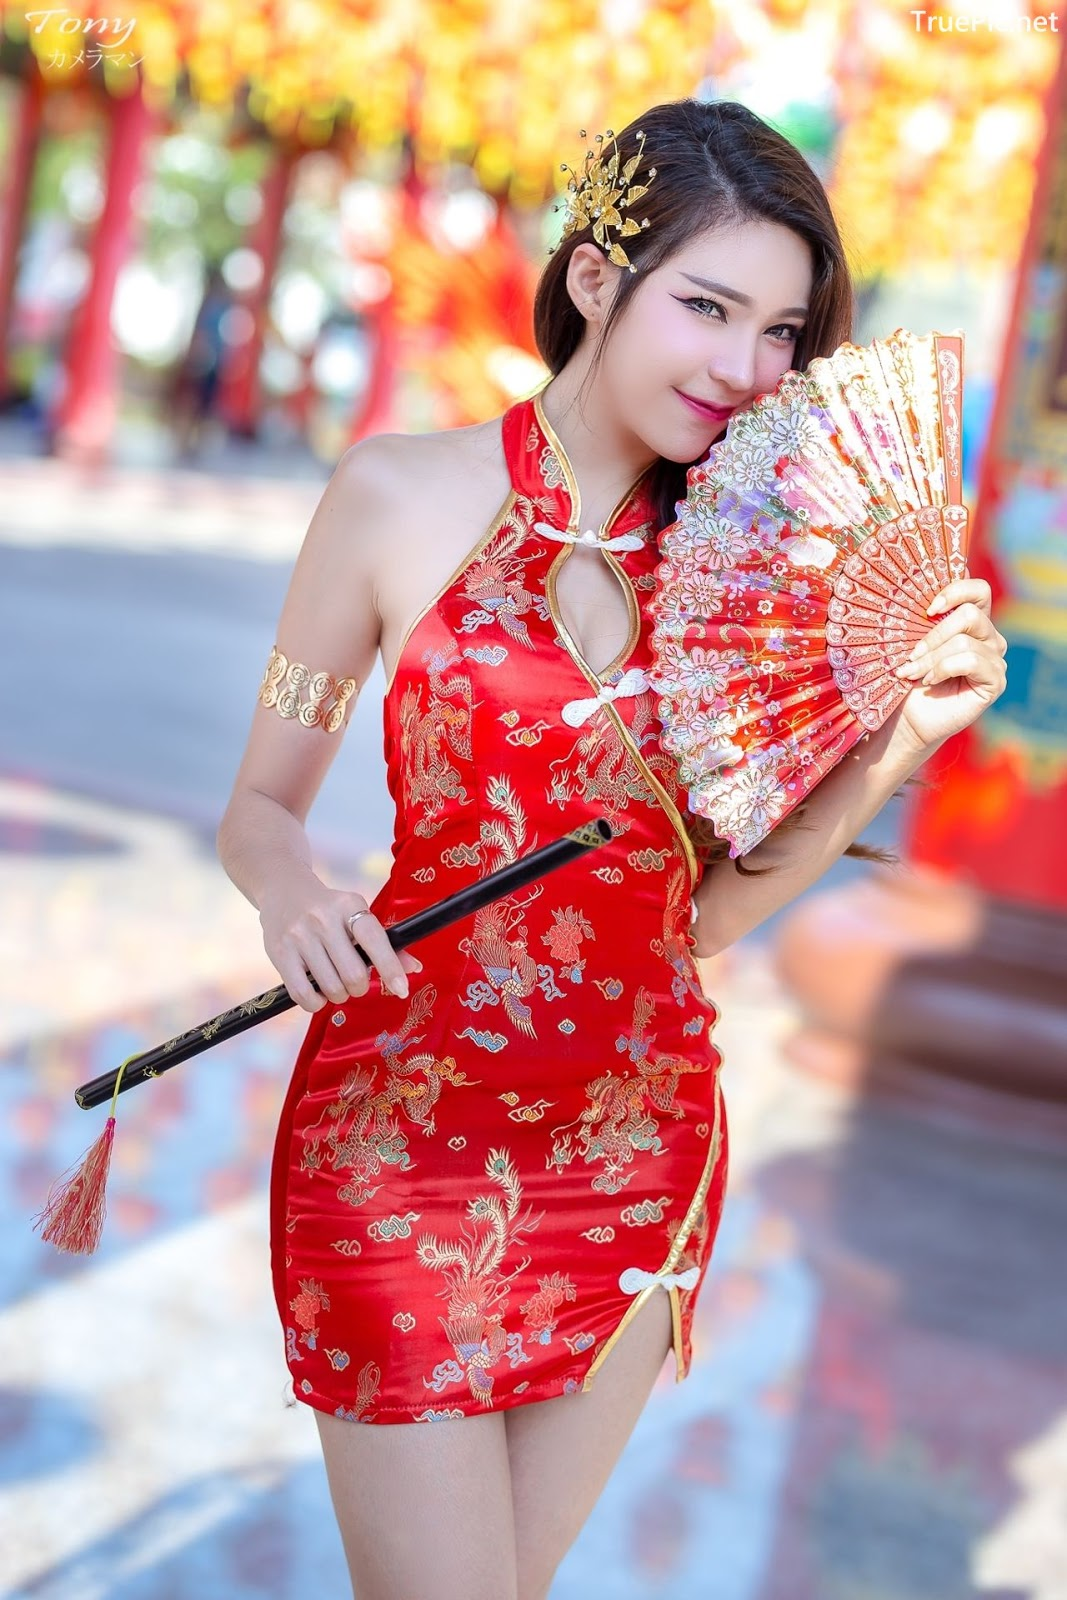 Image-Thailand-Hot-Model-Janet-Kanokwan-Saesim-Sexy-Chinese-Girl-Red-Dress-Traditional-TruePic.net- Picture-9